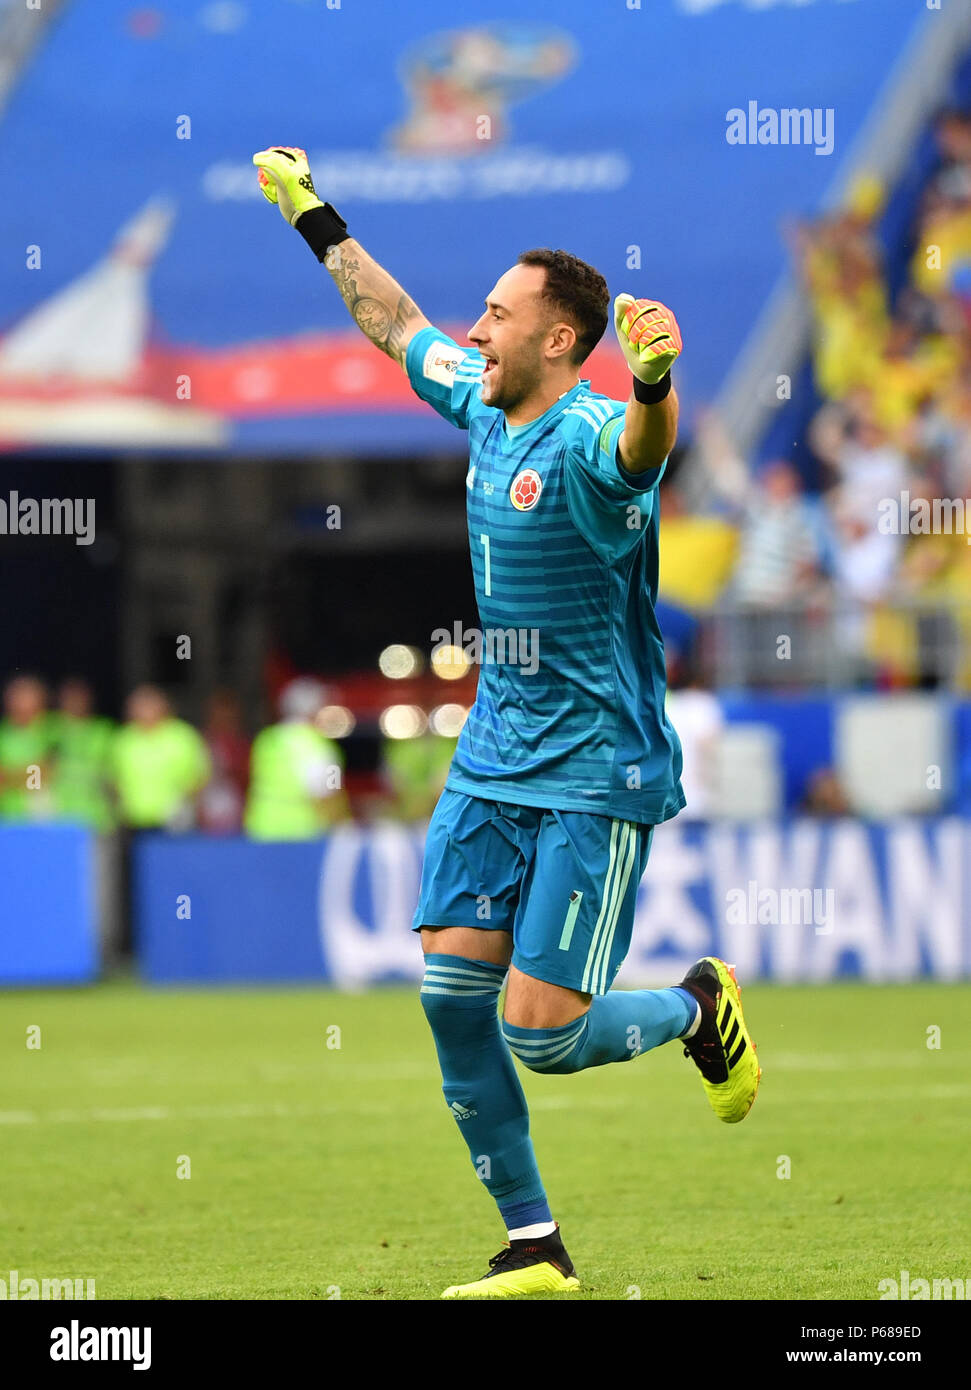 7b383482df3 Ospina Stock Photos   Ospina Stock Images - Page 3 - Alamy